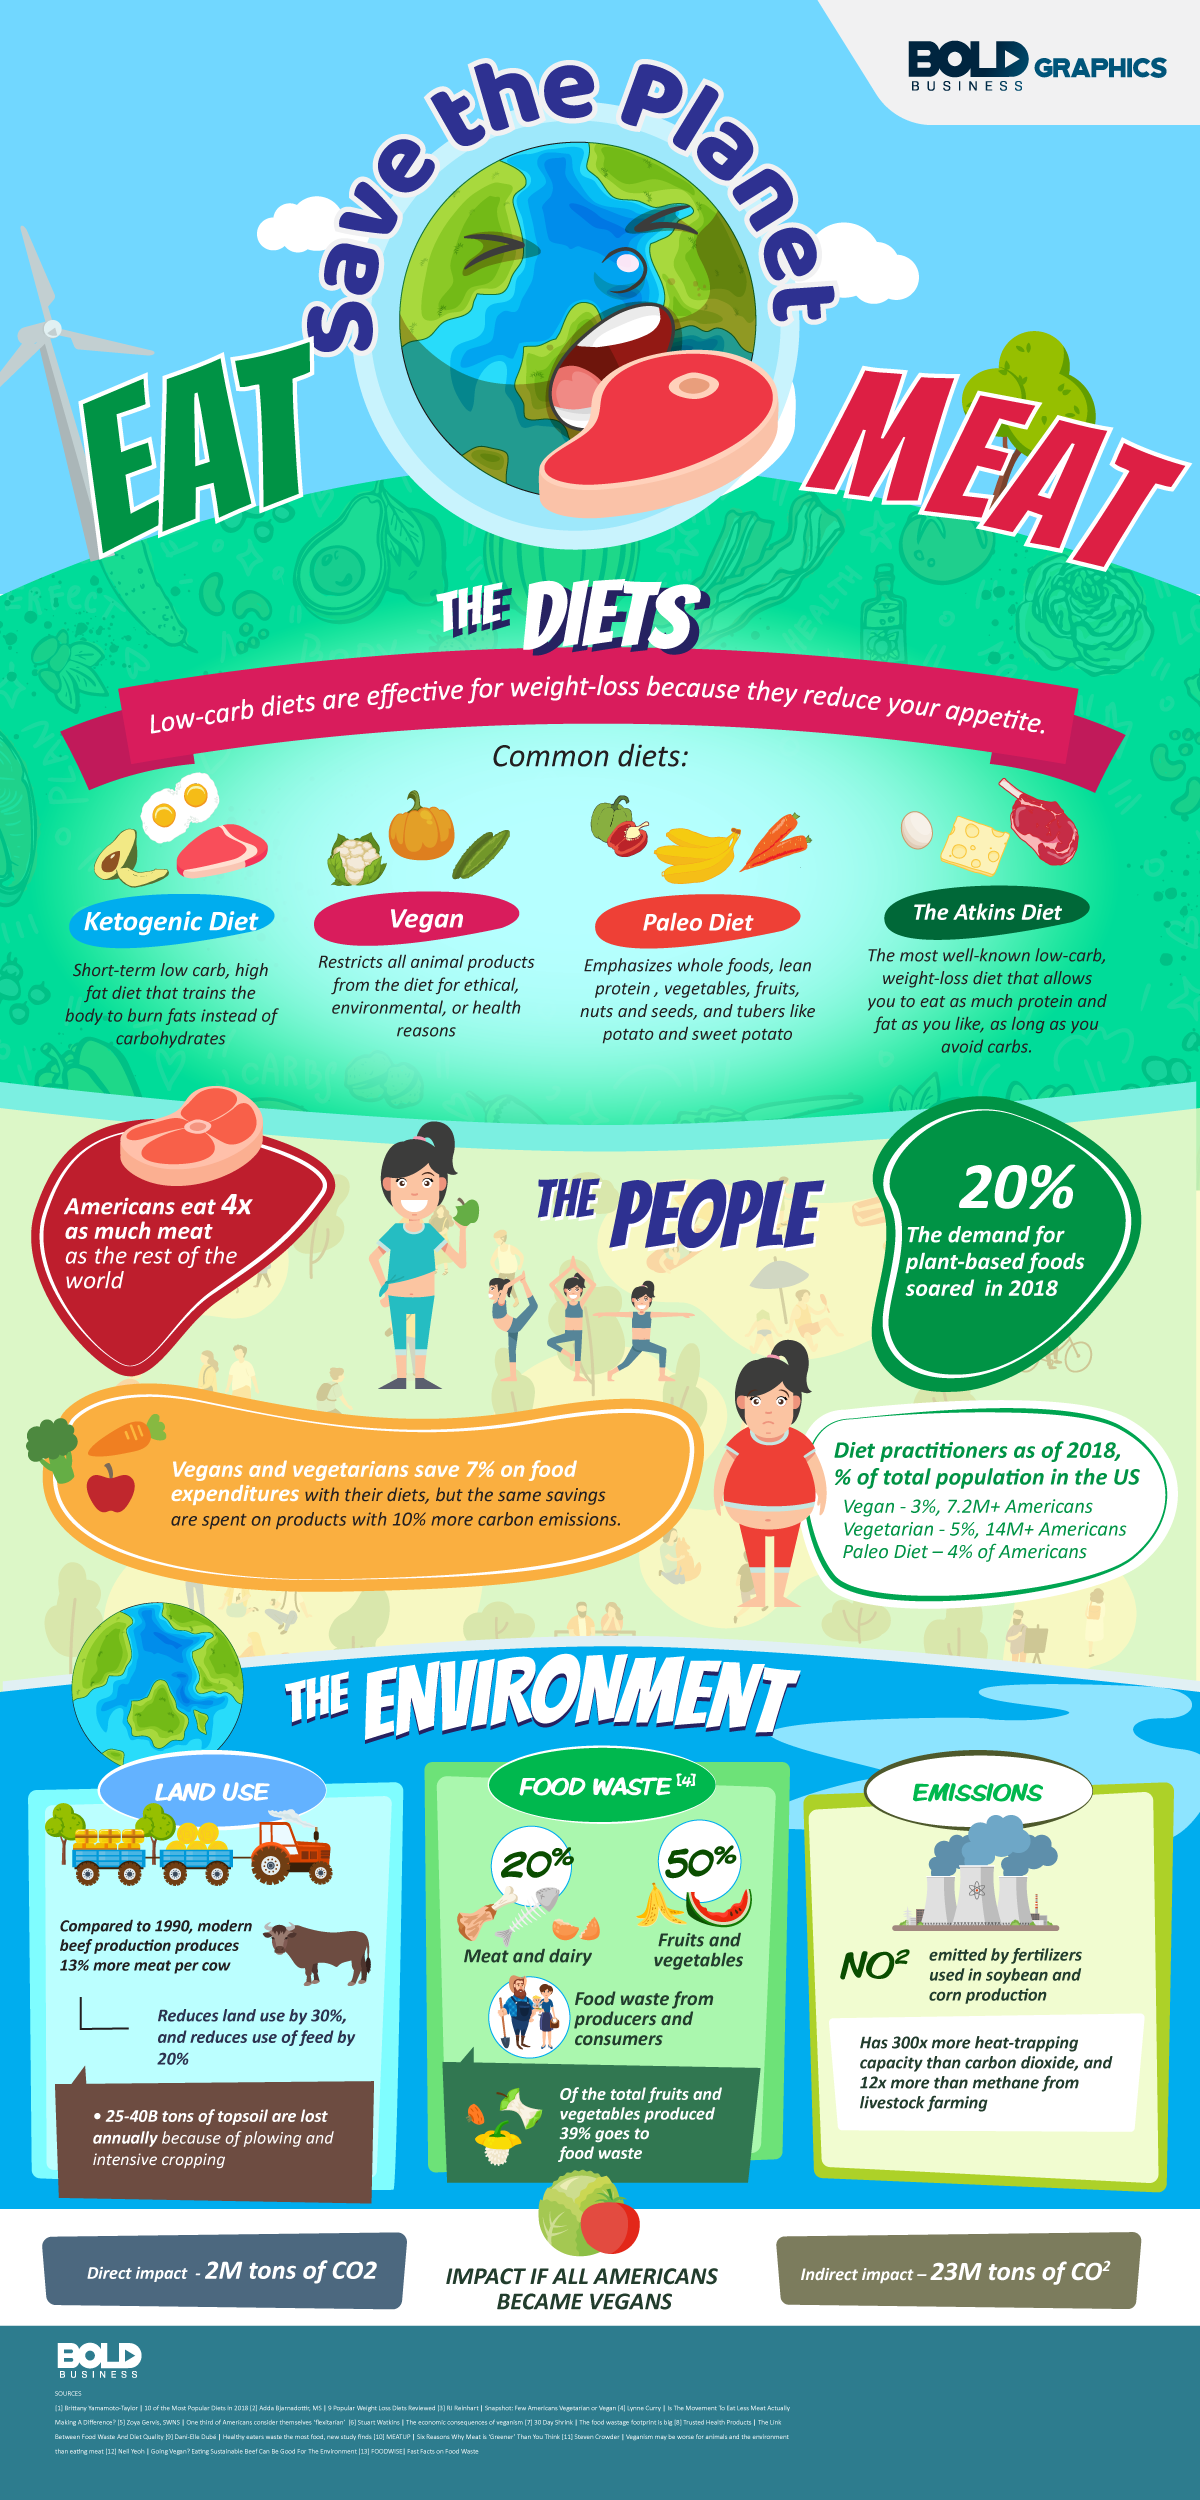 Everything You Need To Know The Flexitarian Diet: An Overview - Infographic